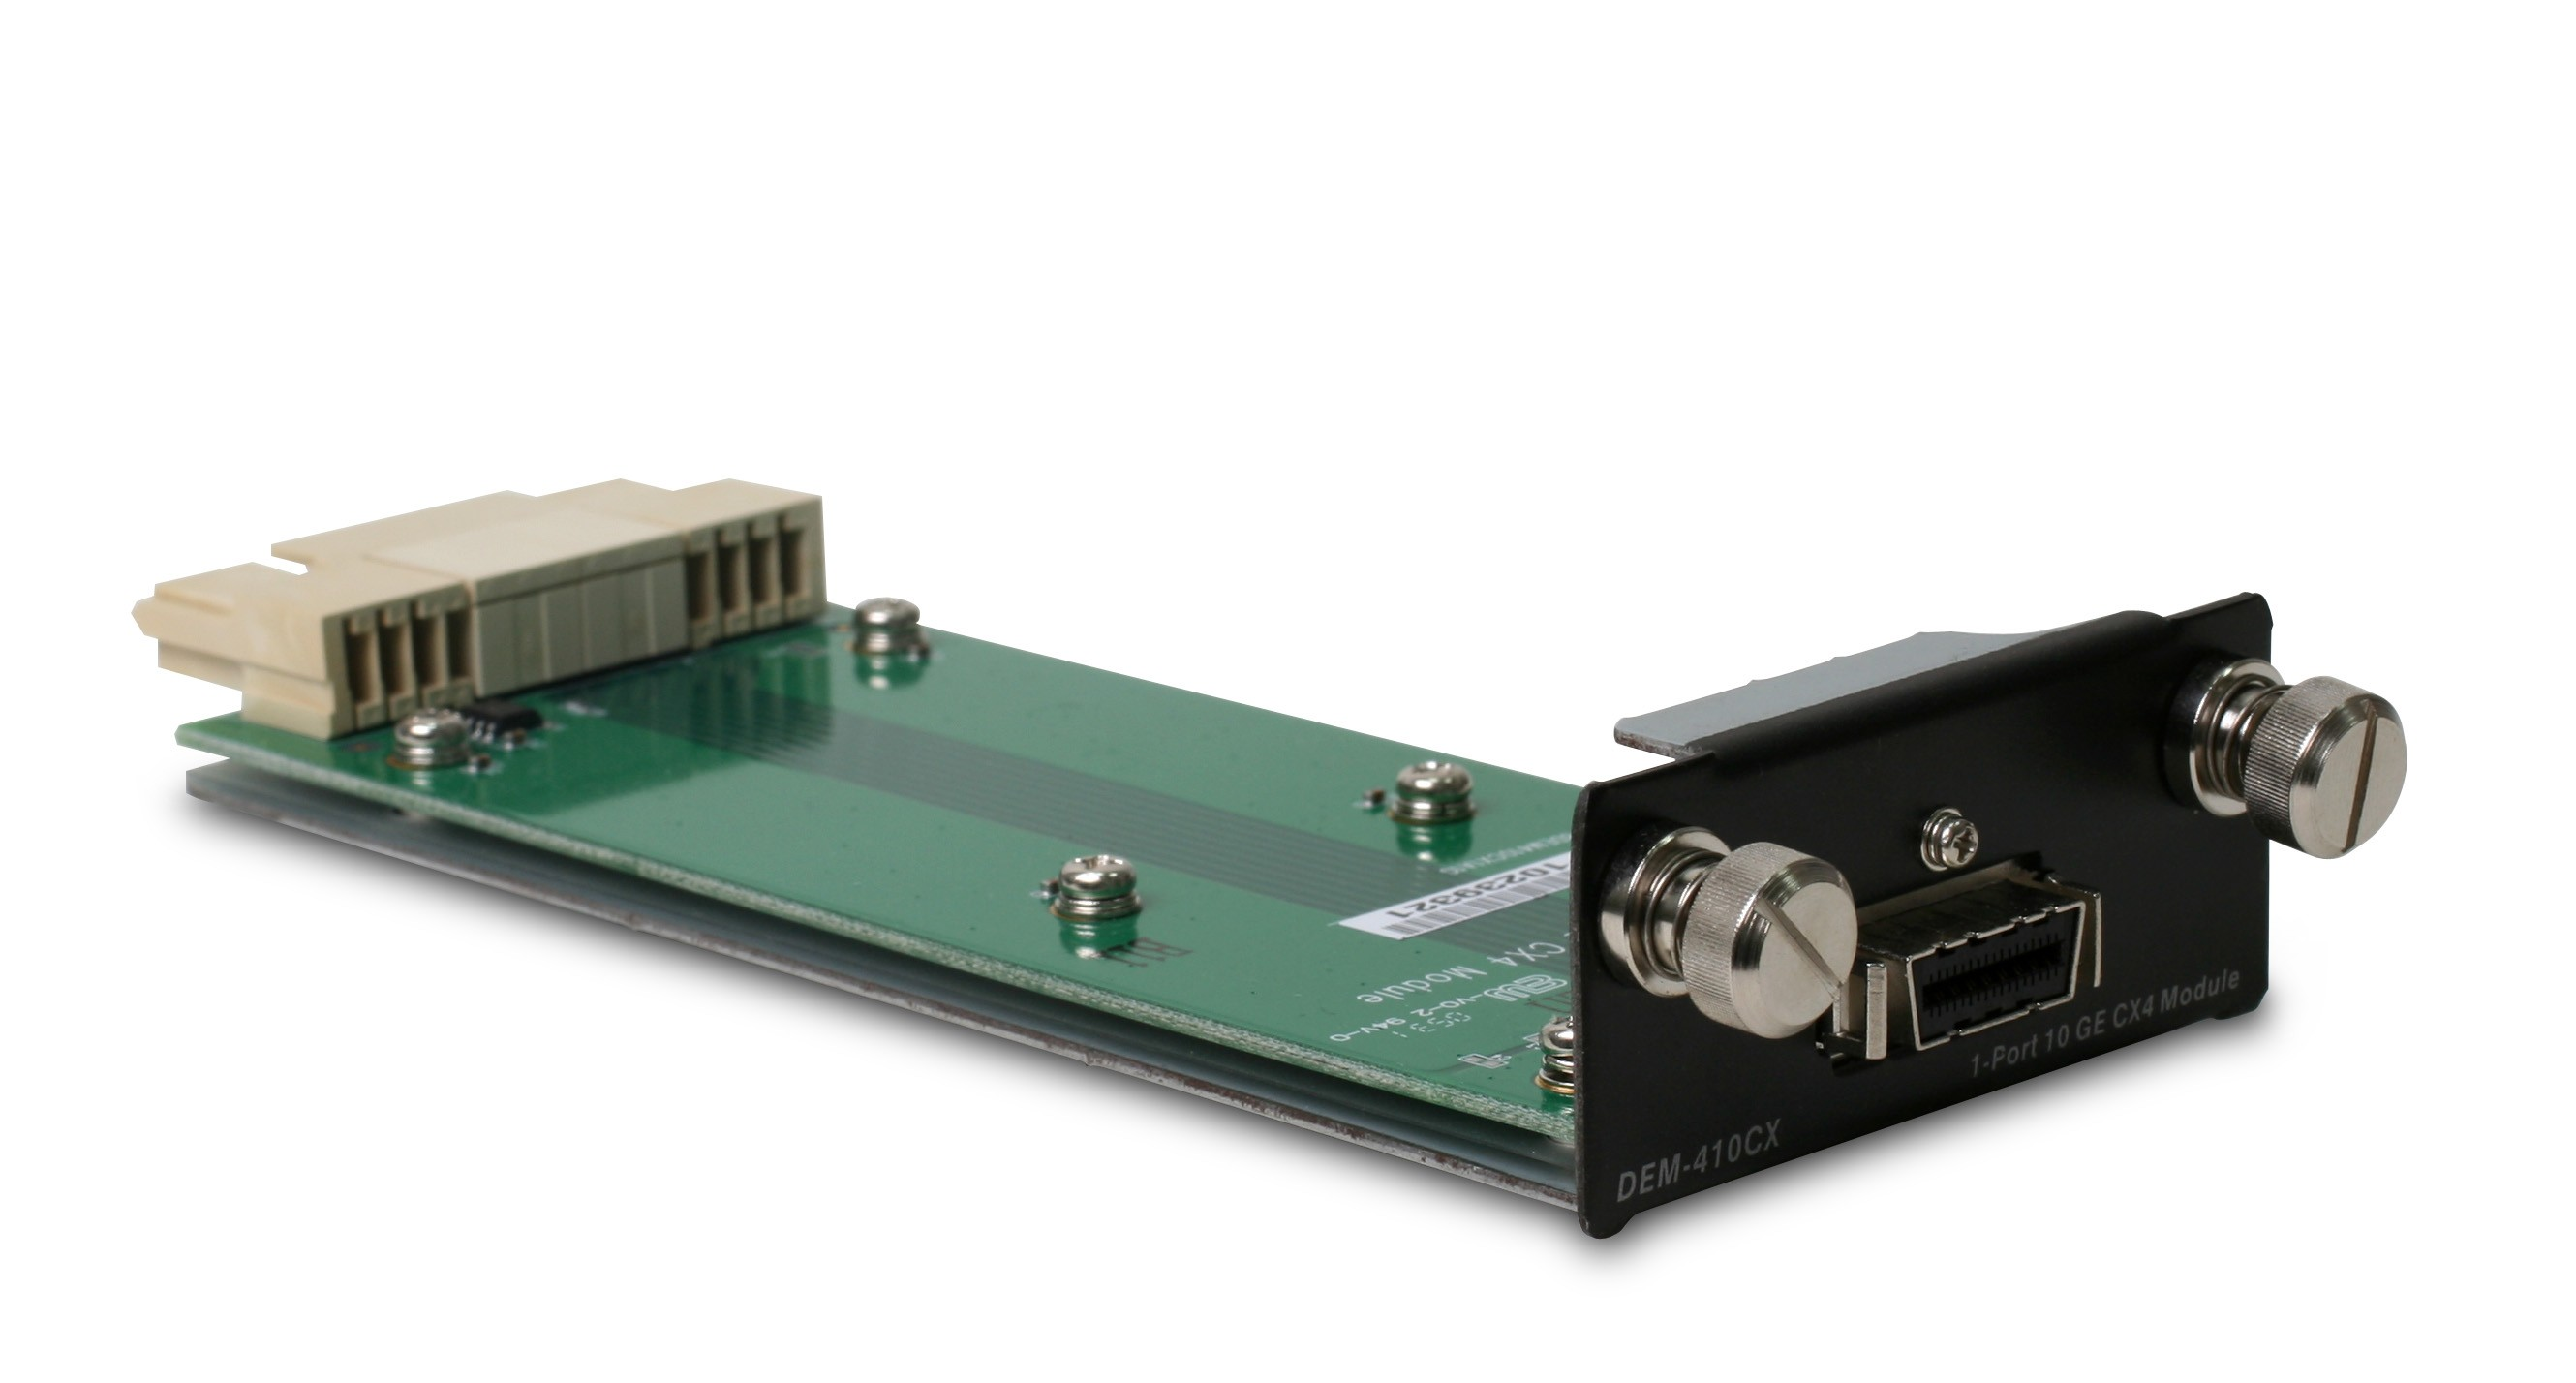 Image 1 of D-link Dem-410cx 1-port 10gbps 1000basecx4 Uplink Module For Dgs-34xx Switch